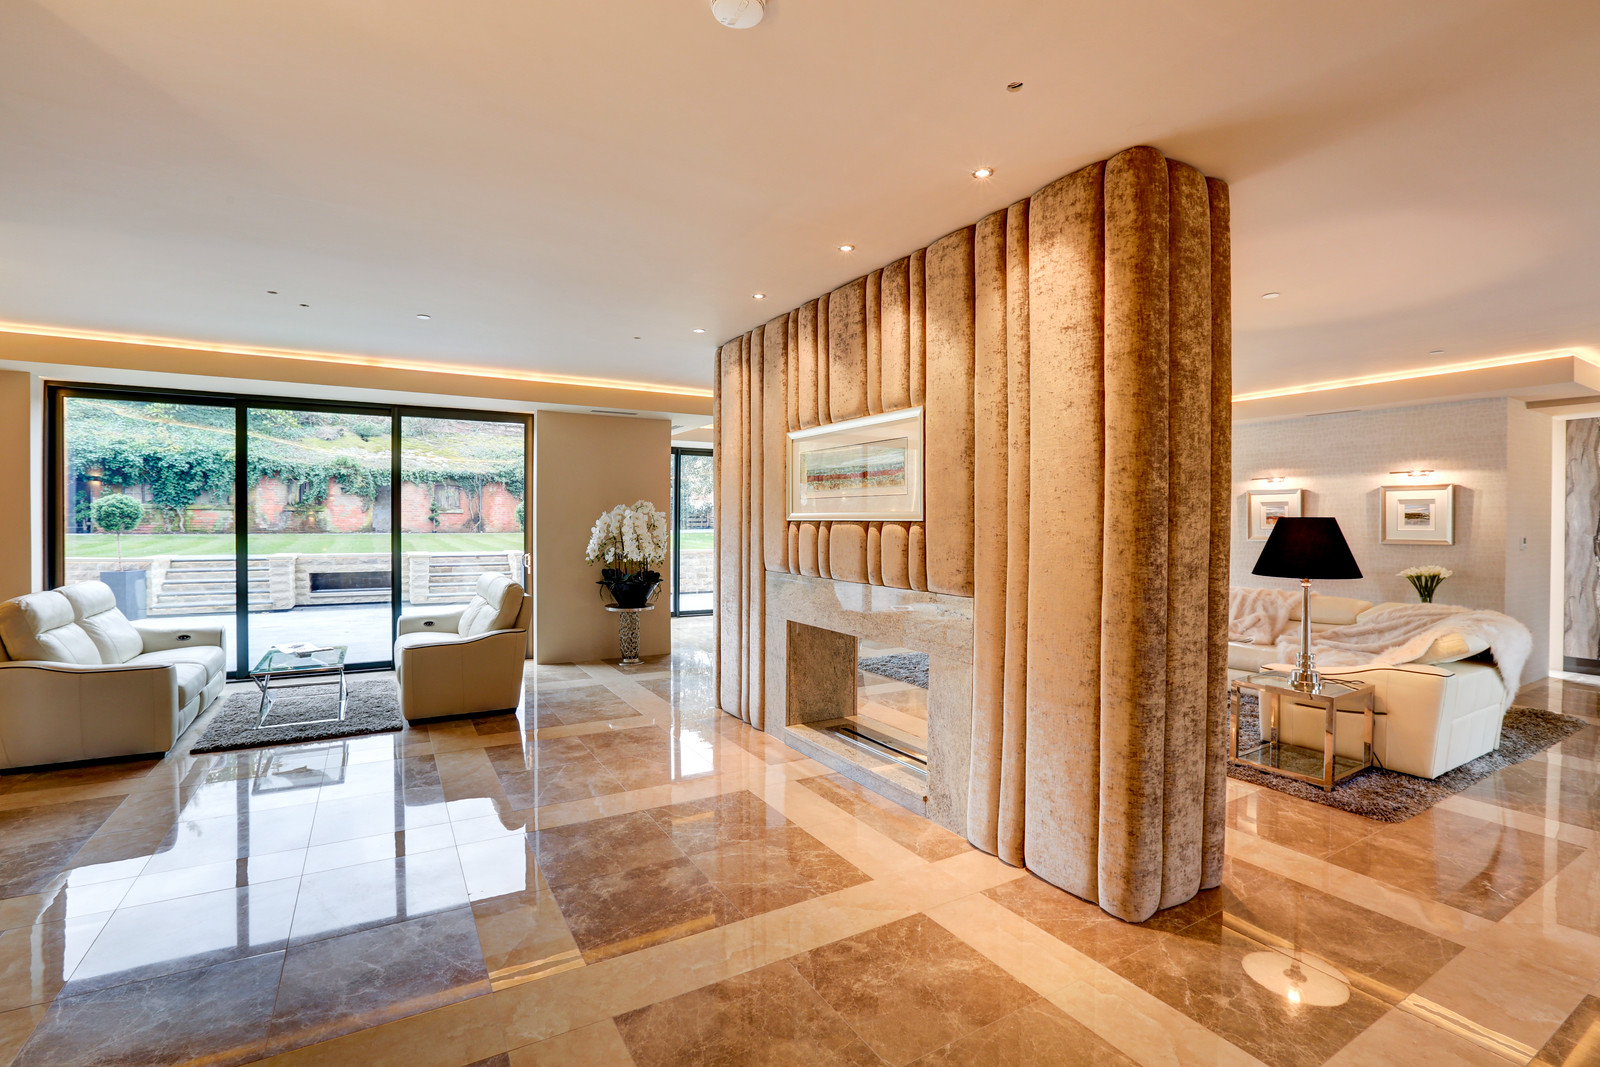 luxurious interior, open plan lounge, polished marble floor. Tanglewood Nottingham